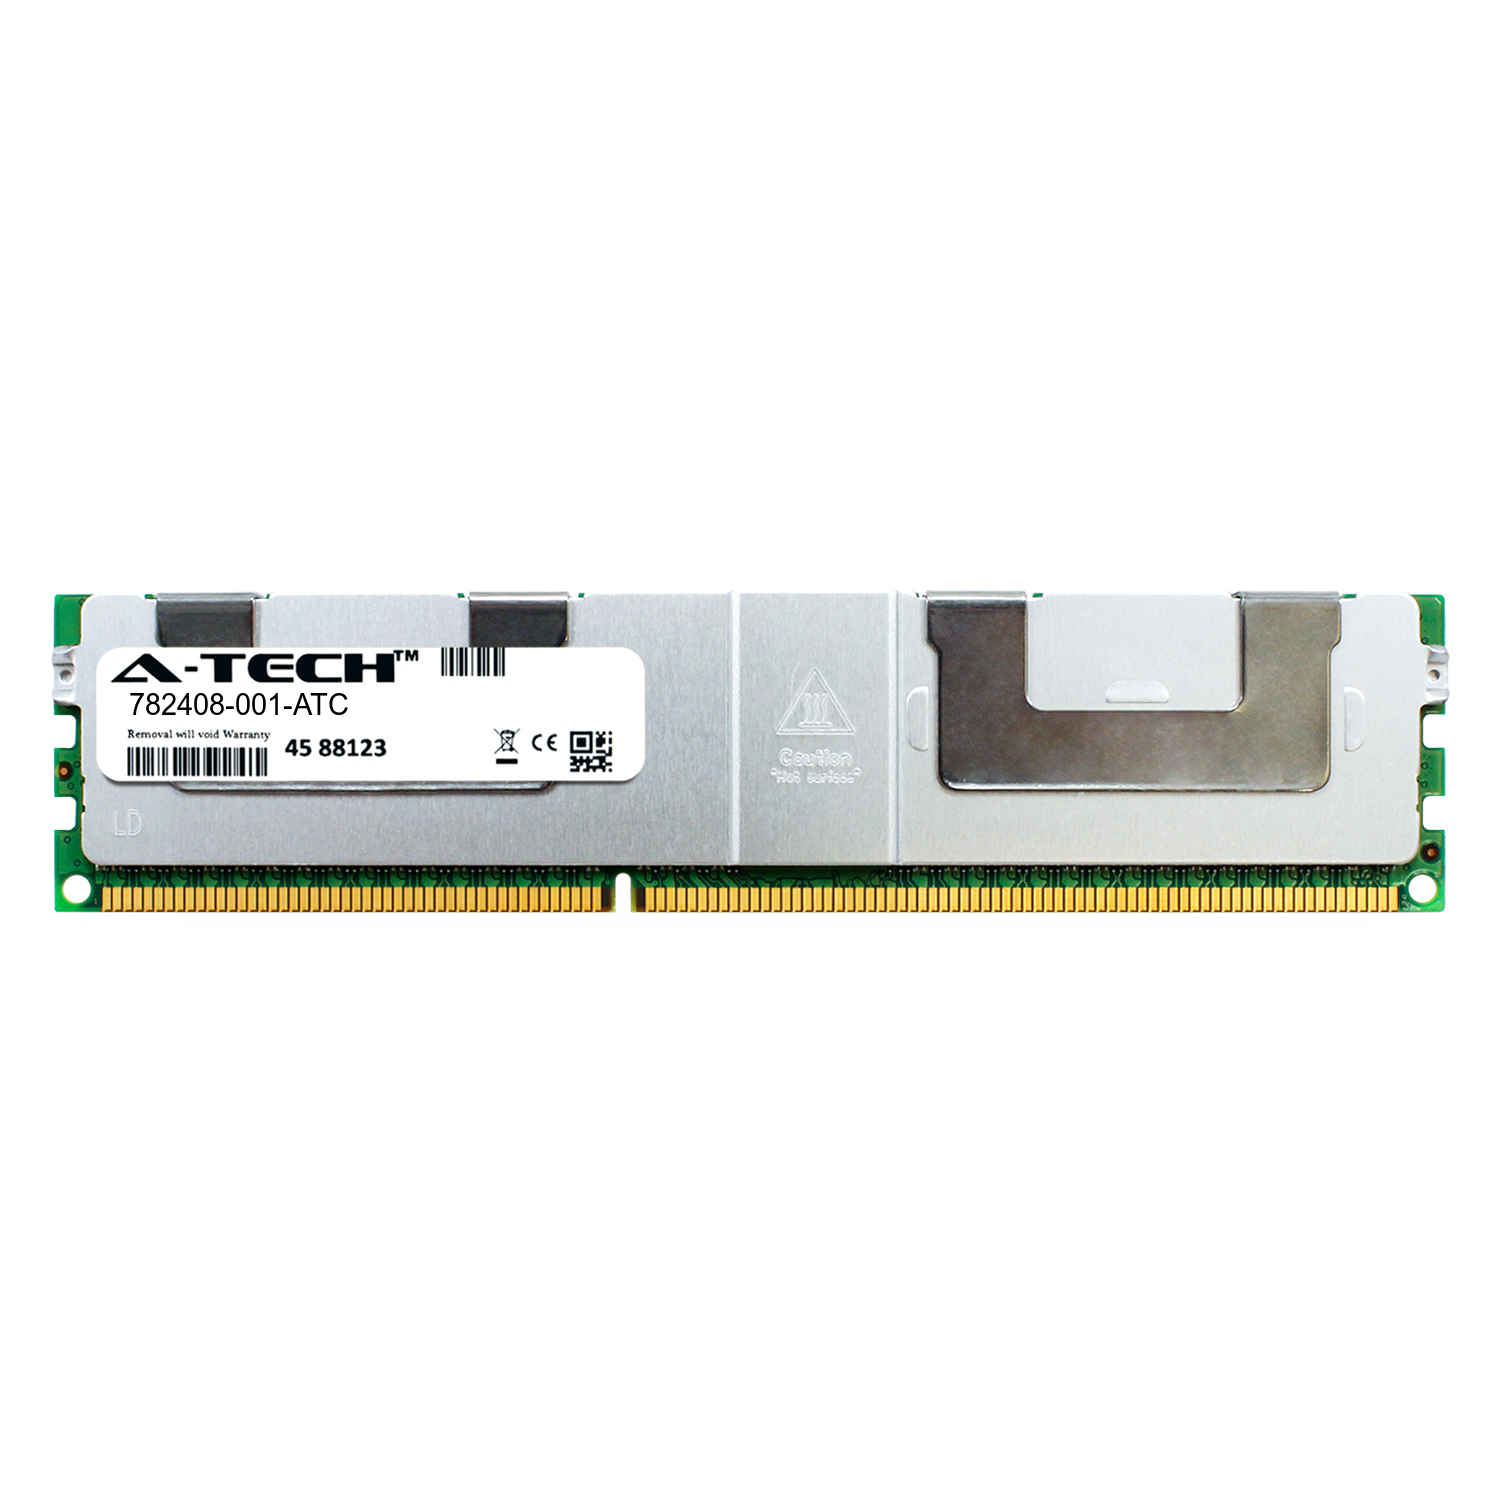 Single Server Memory Ram Stick 782408-001-ATC DDR3//DDR3L 1333MHz PC3-10600 ECC Load Reduced LRDIMM 4rx4 1.35v A-Tech 32GB Replacement for HP 782408-001